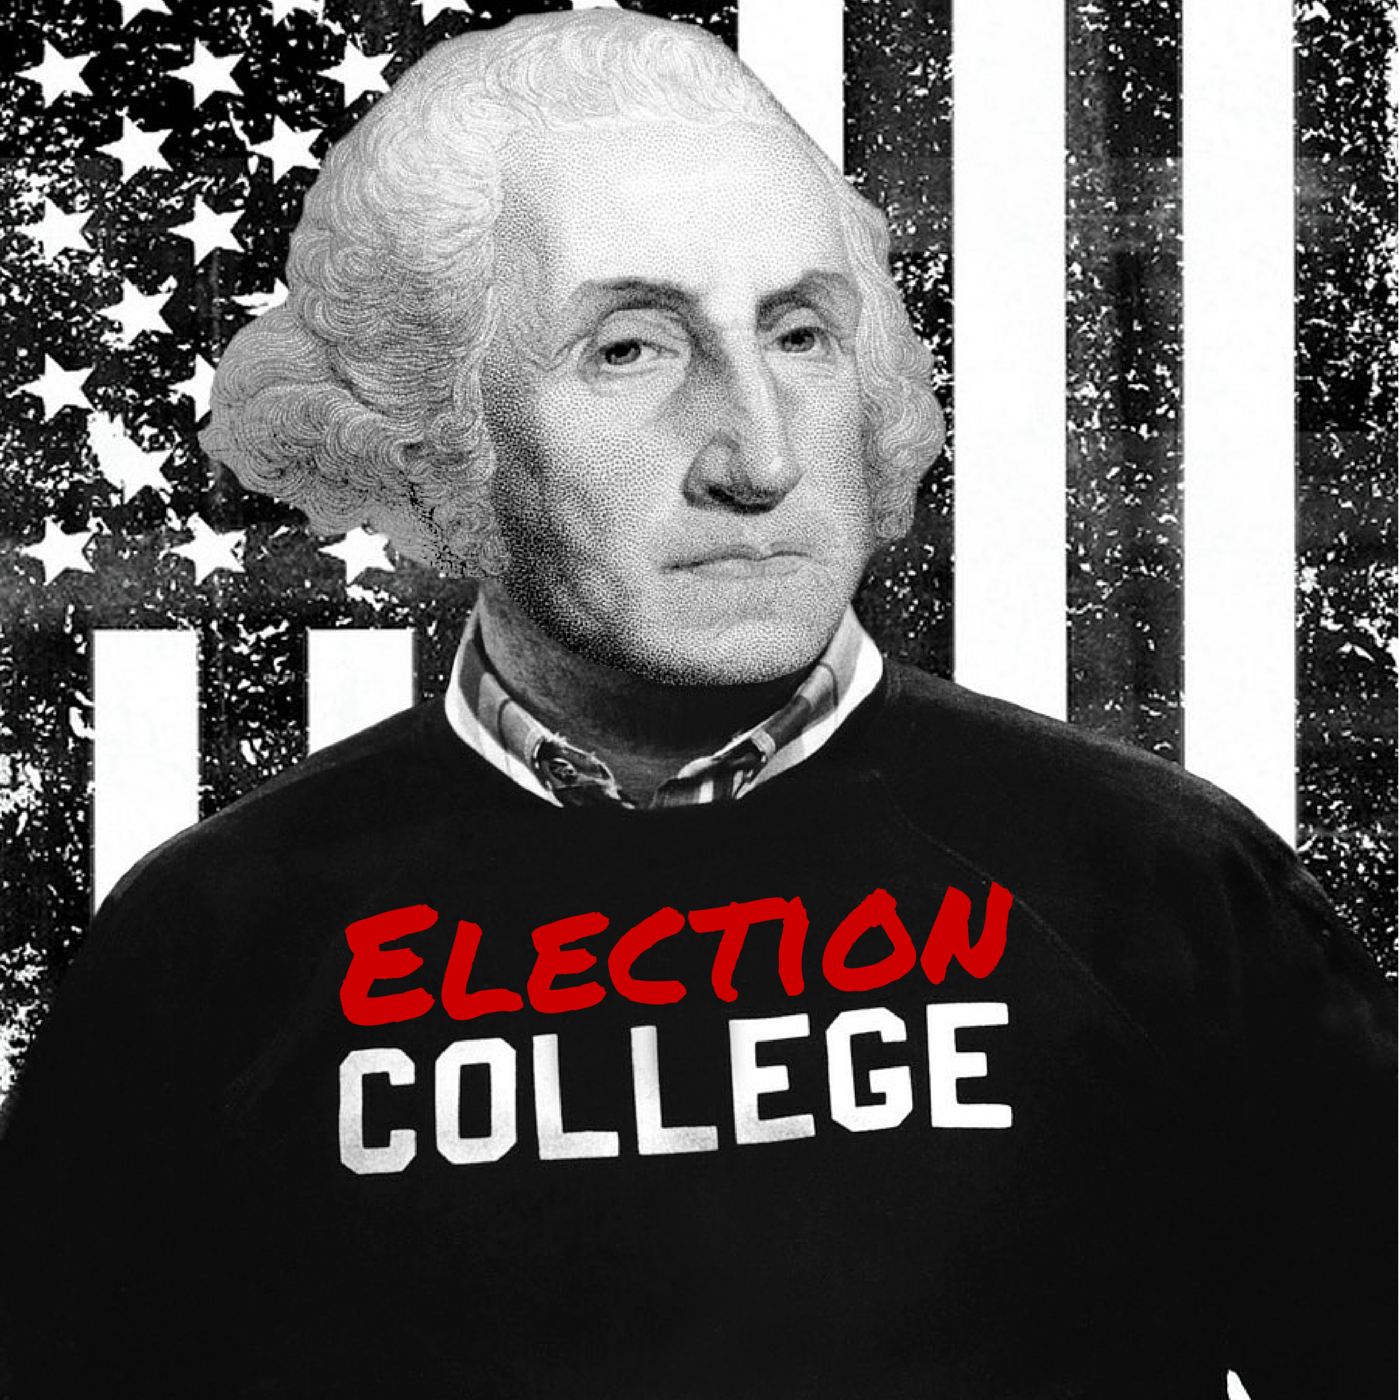 Andrew Jackson - Born for a Storm (His Life - Part 1) | Episode #133 | Election College: United States Presidential Election History